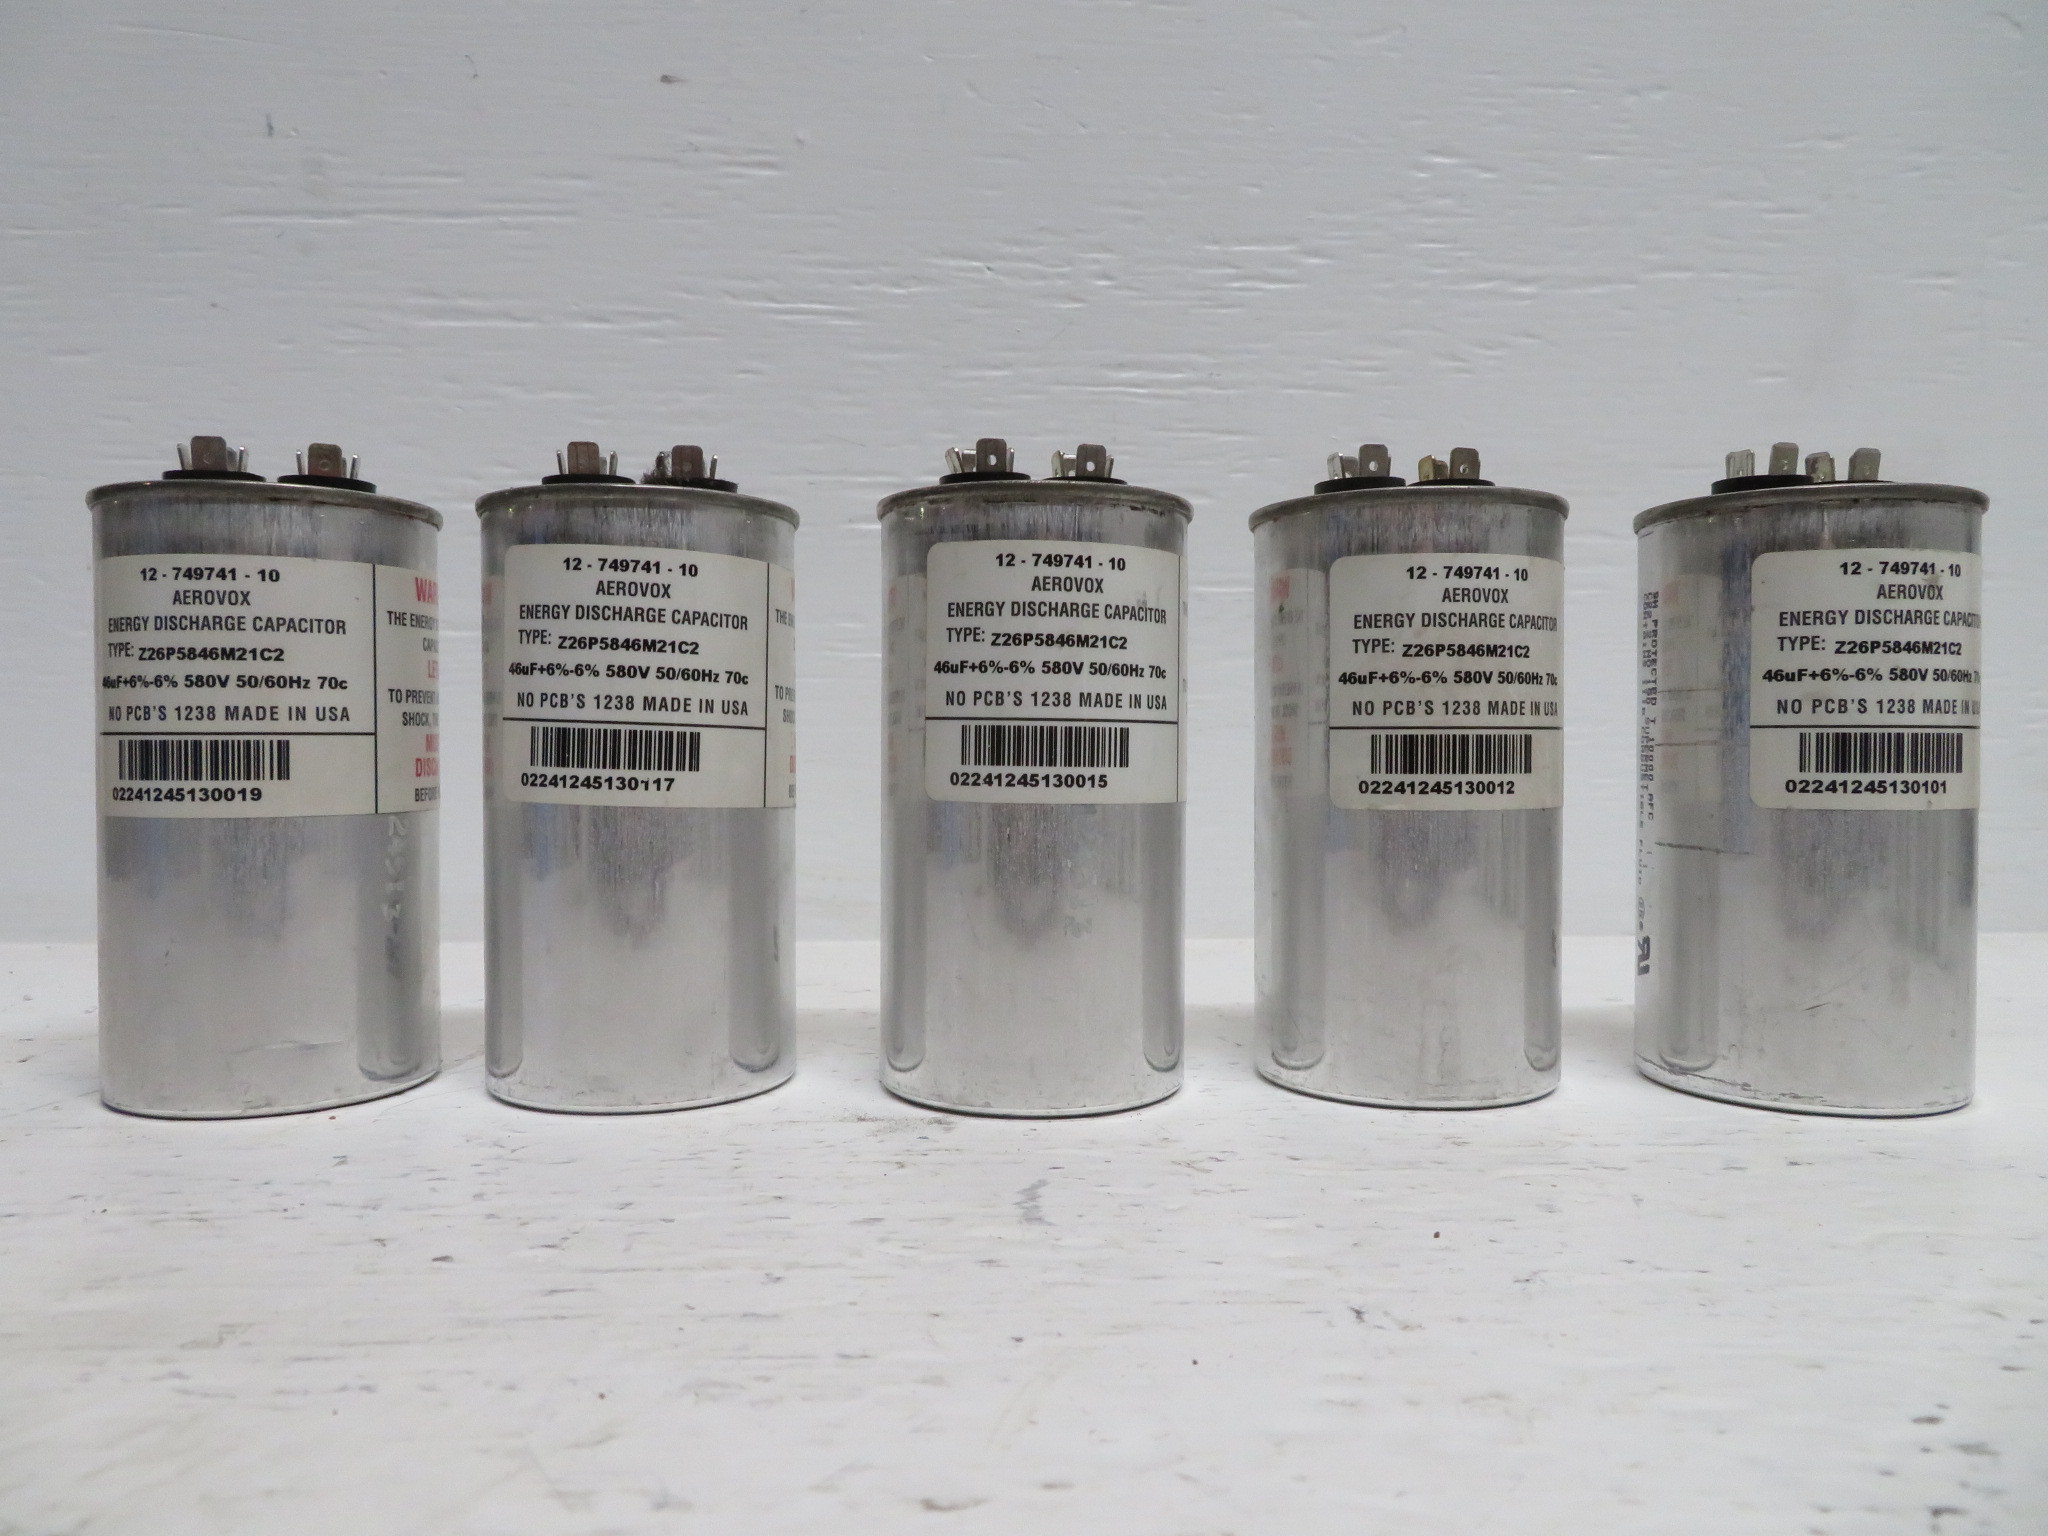 small resolution of lot of 5 aerovox 12 749741 10 capacitor z26p5846m21c2 46 uf 6 580 vac np2295 3 river city industrial